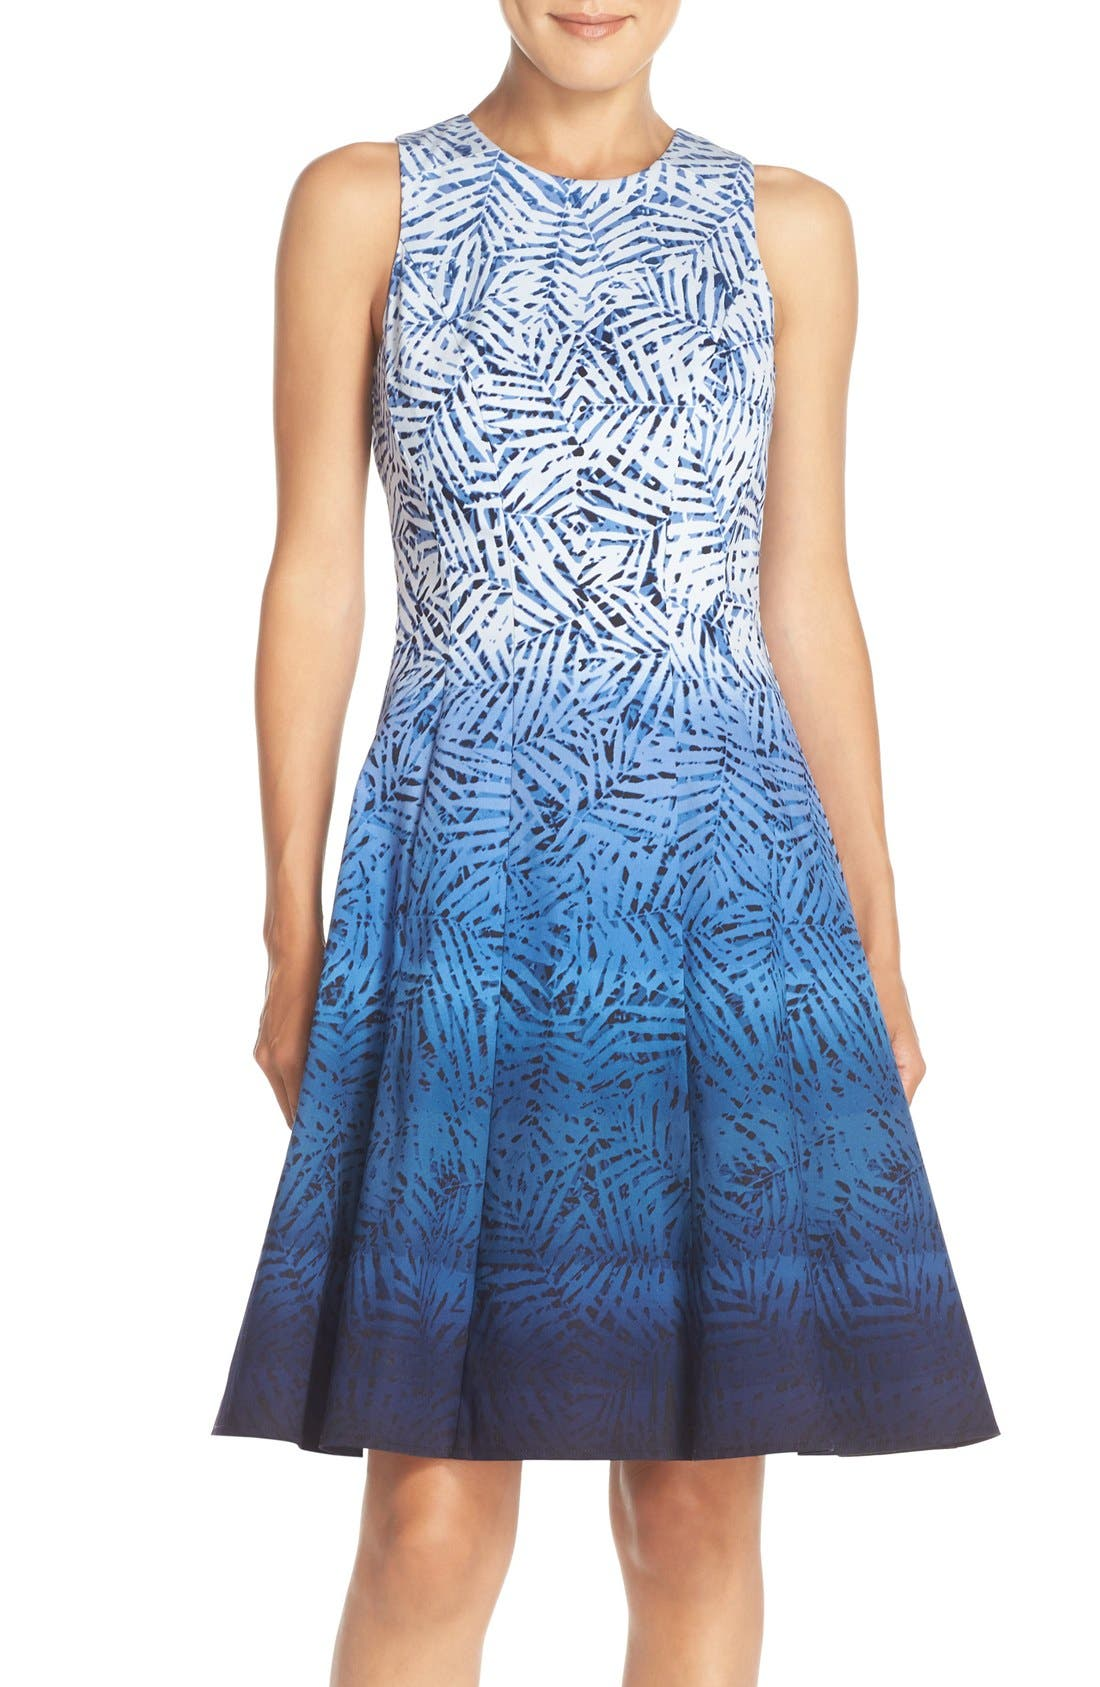 Alternate Image 1 Selected - Maggy London Ombré Print Fit & Flare Dress